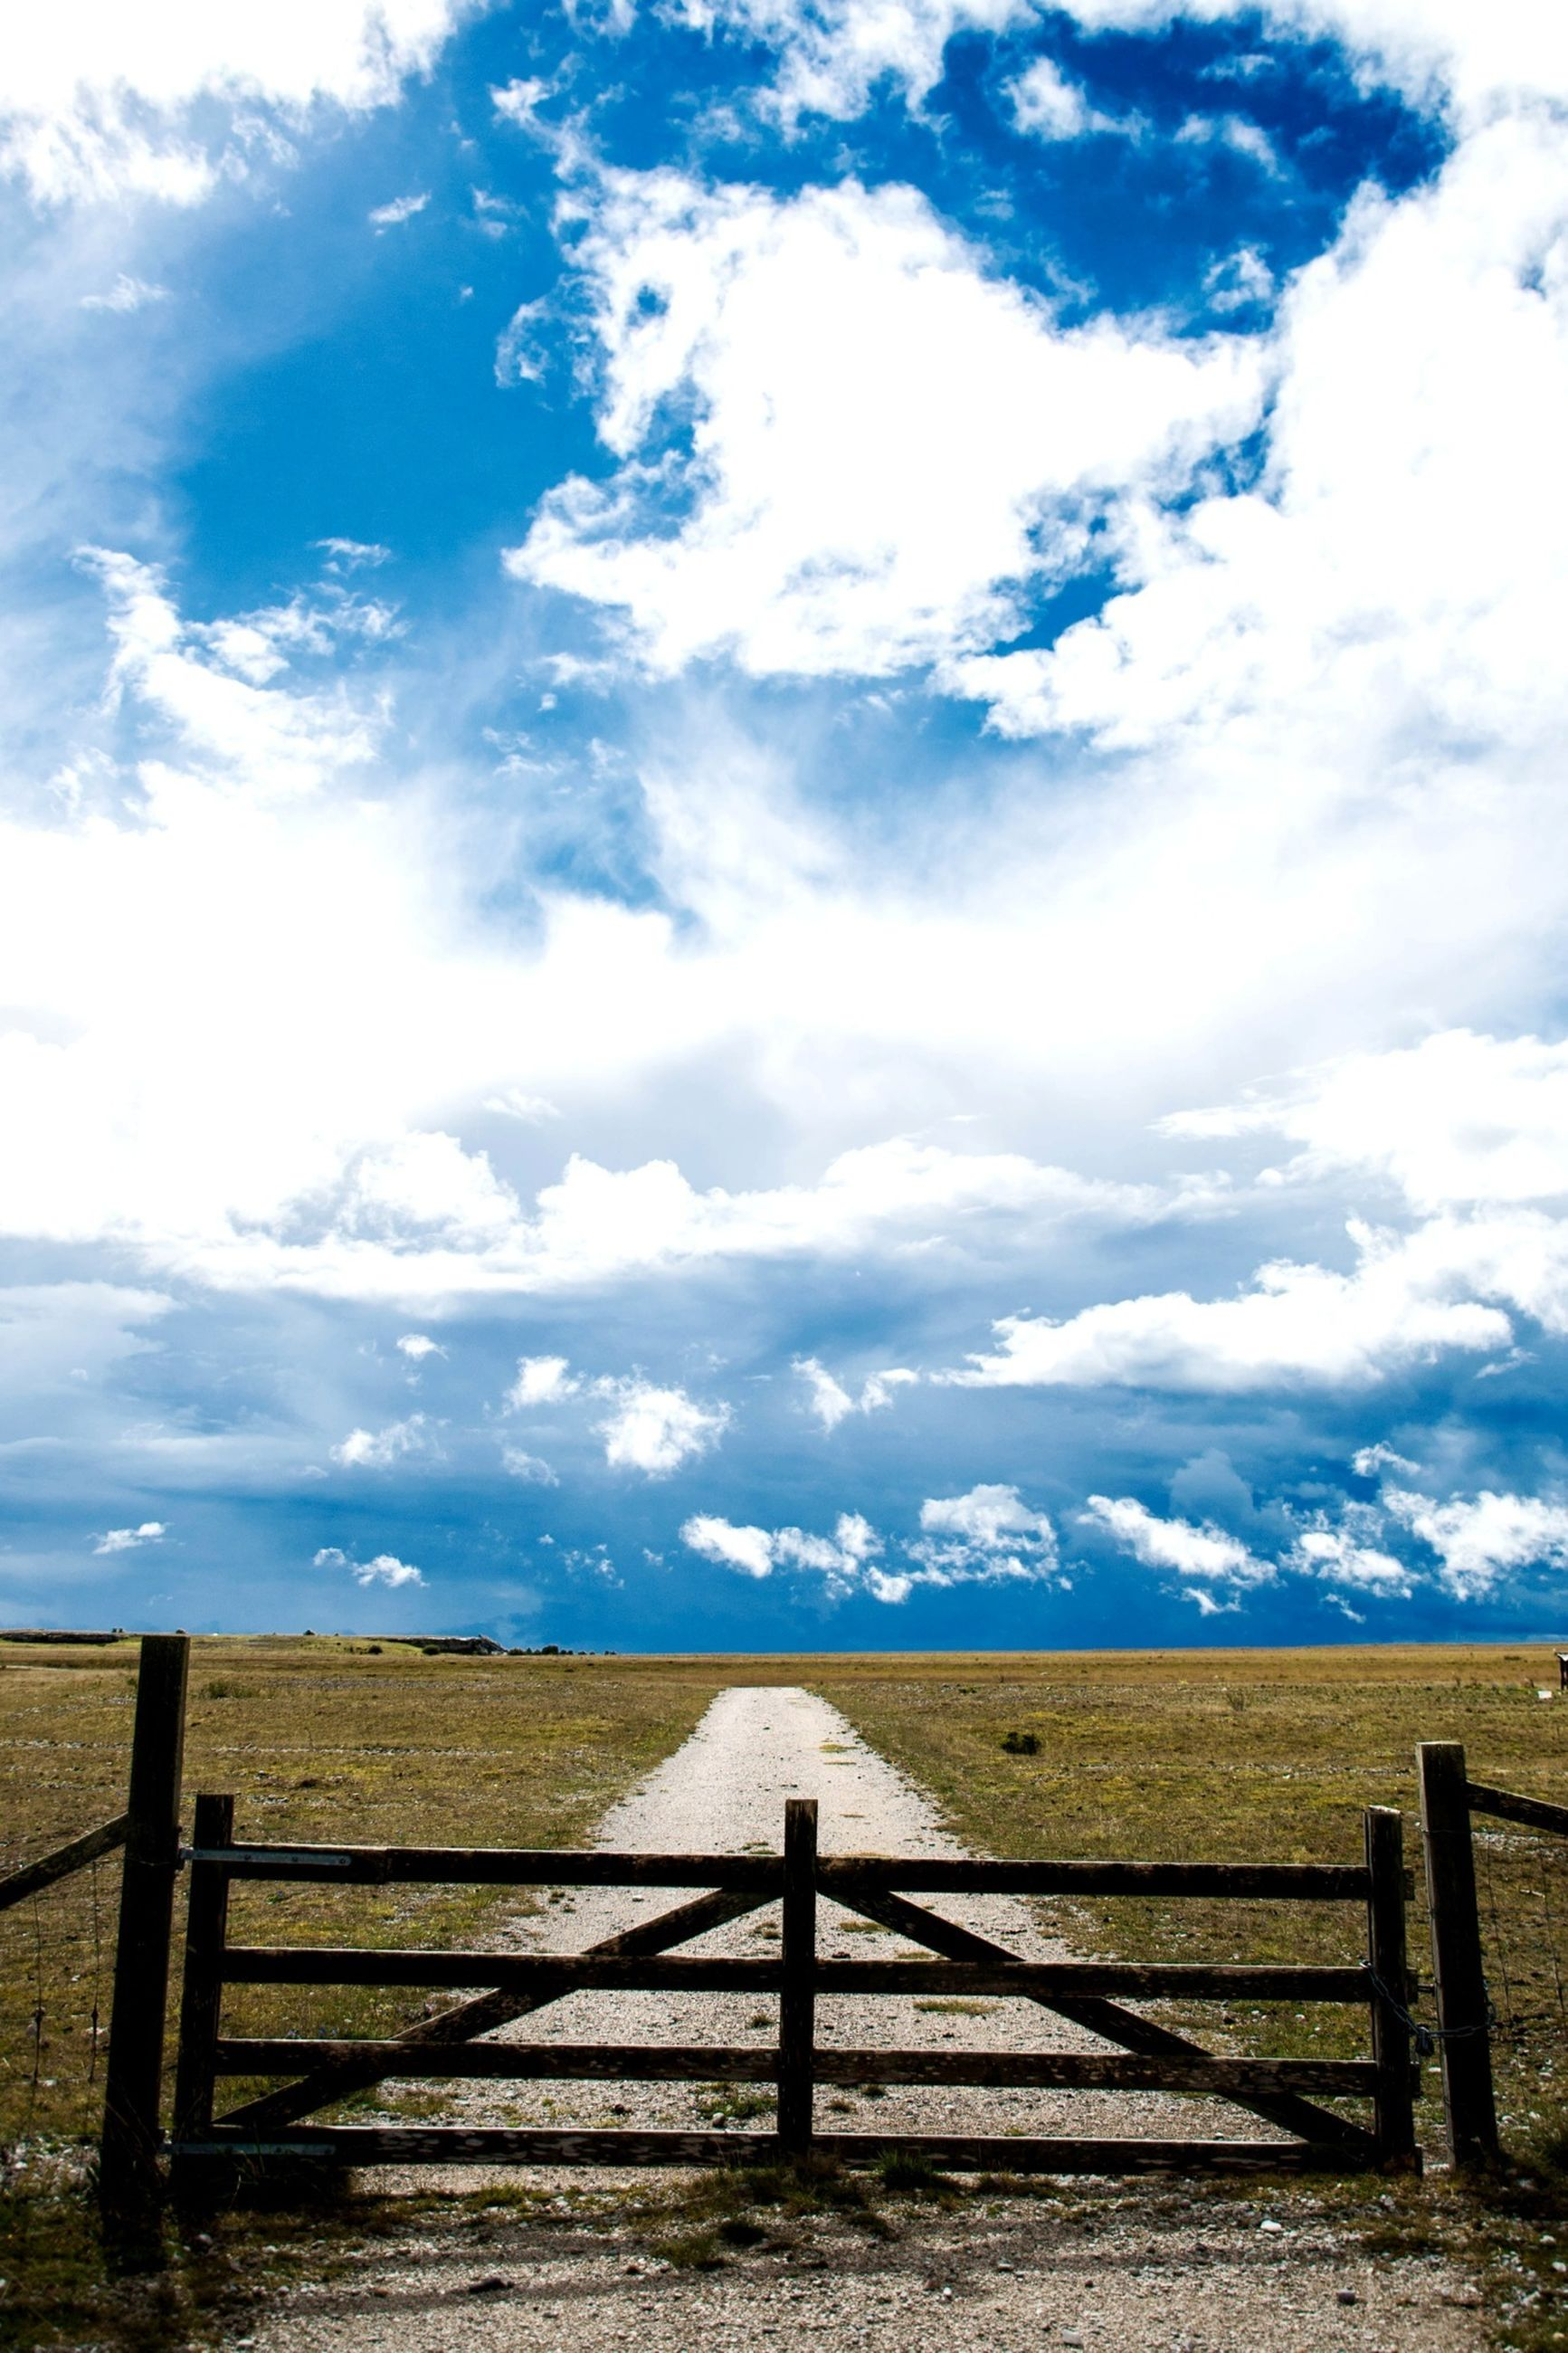 sky, railing, tranquility, tranquil scene, cloud - sky, fence, scenics, landscape, beauty in nature, cloudy, nature, cloud, field, sea, wood - material, the way forward, non-urban scene, idyllic, remote, blue